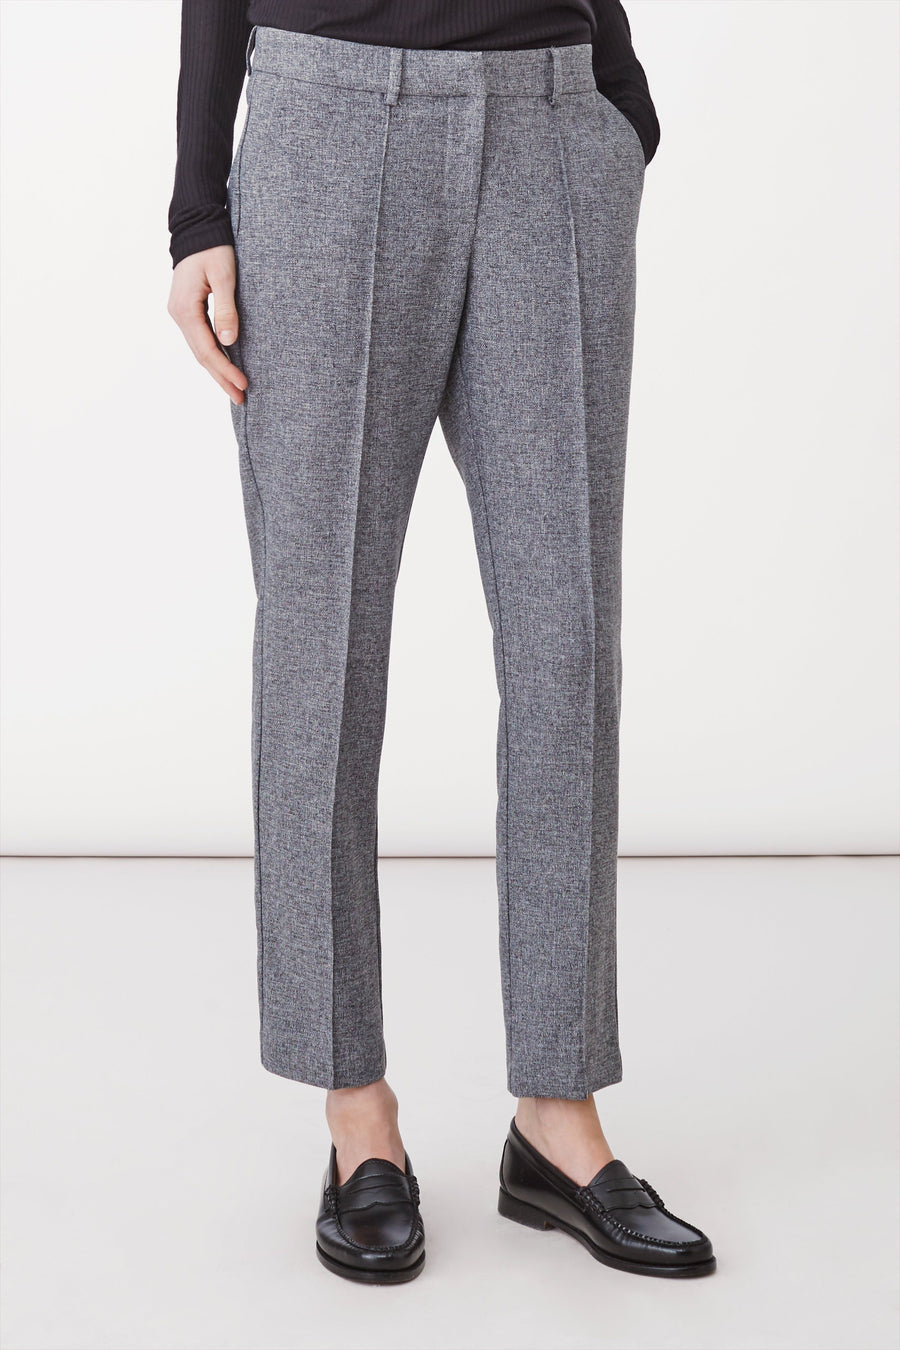 BELTON TROUSERS - GREY PINSTRIPE